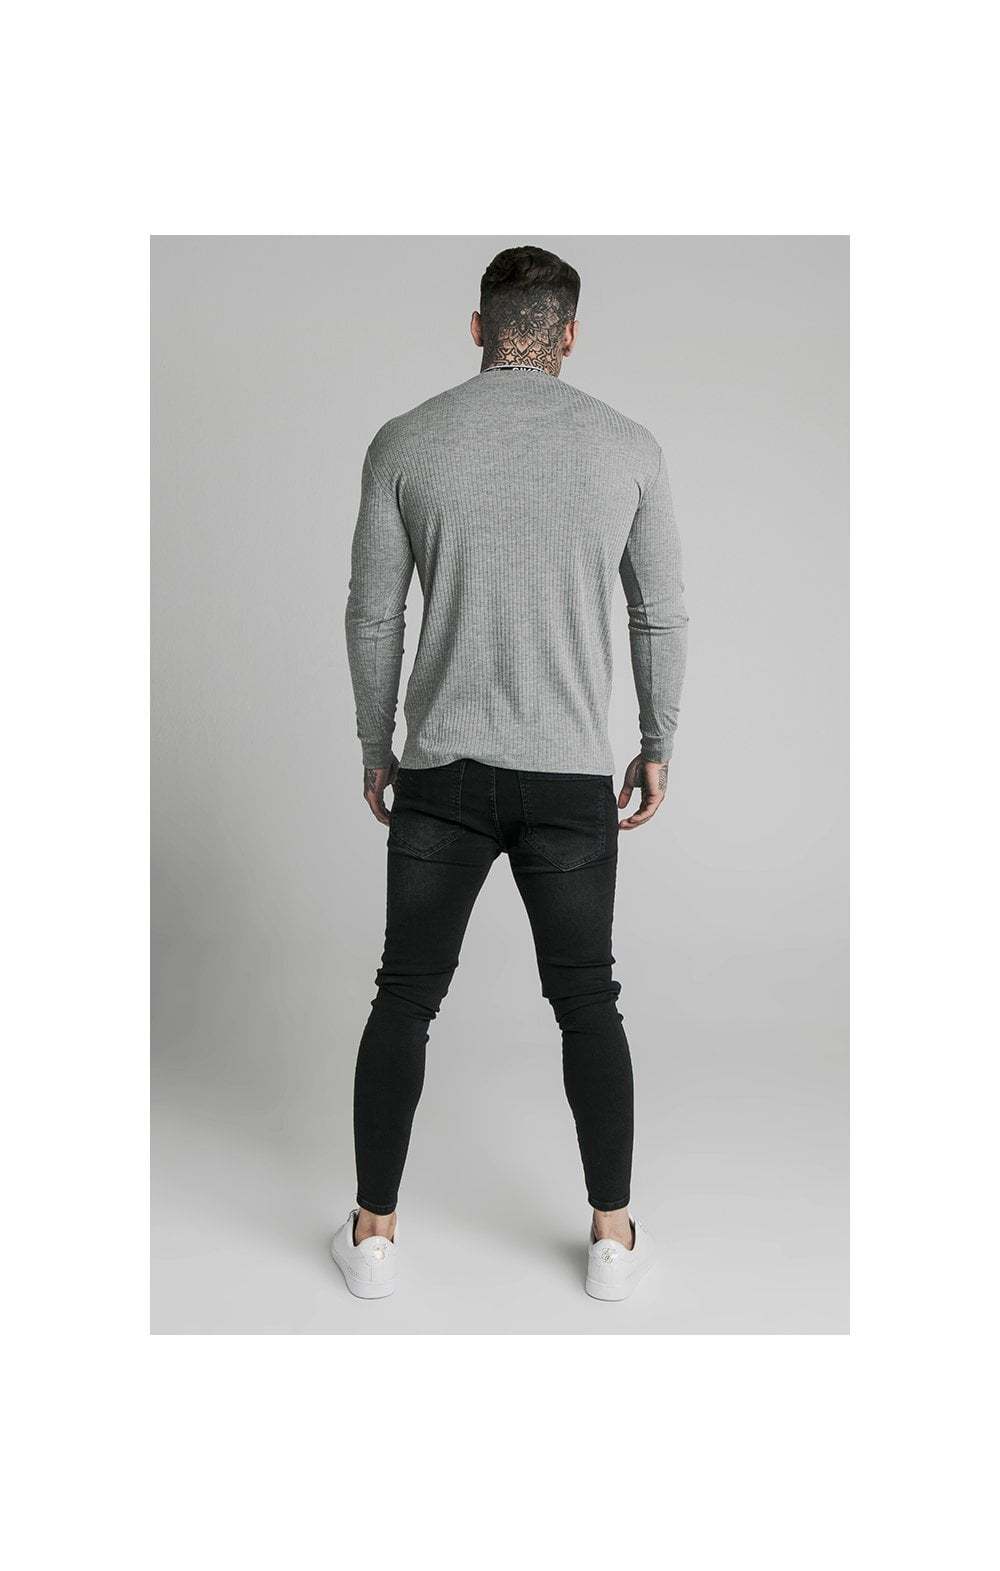 Load image into Gallery viewer, SikSilk L/S Rib Knit Tee - Grey (5)